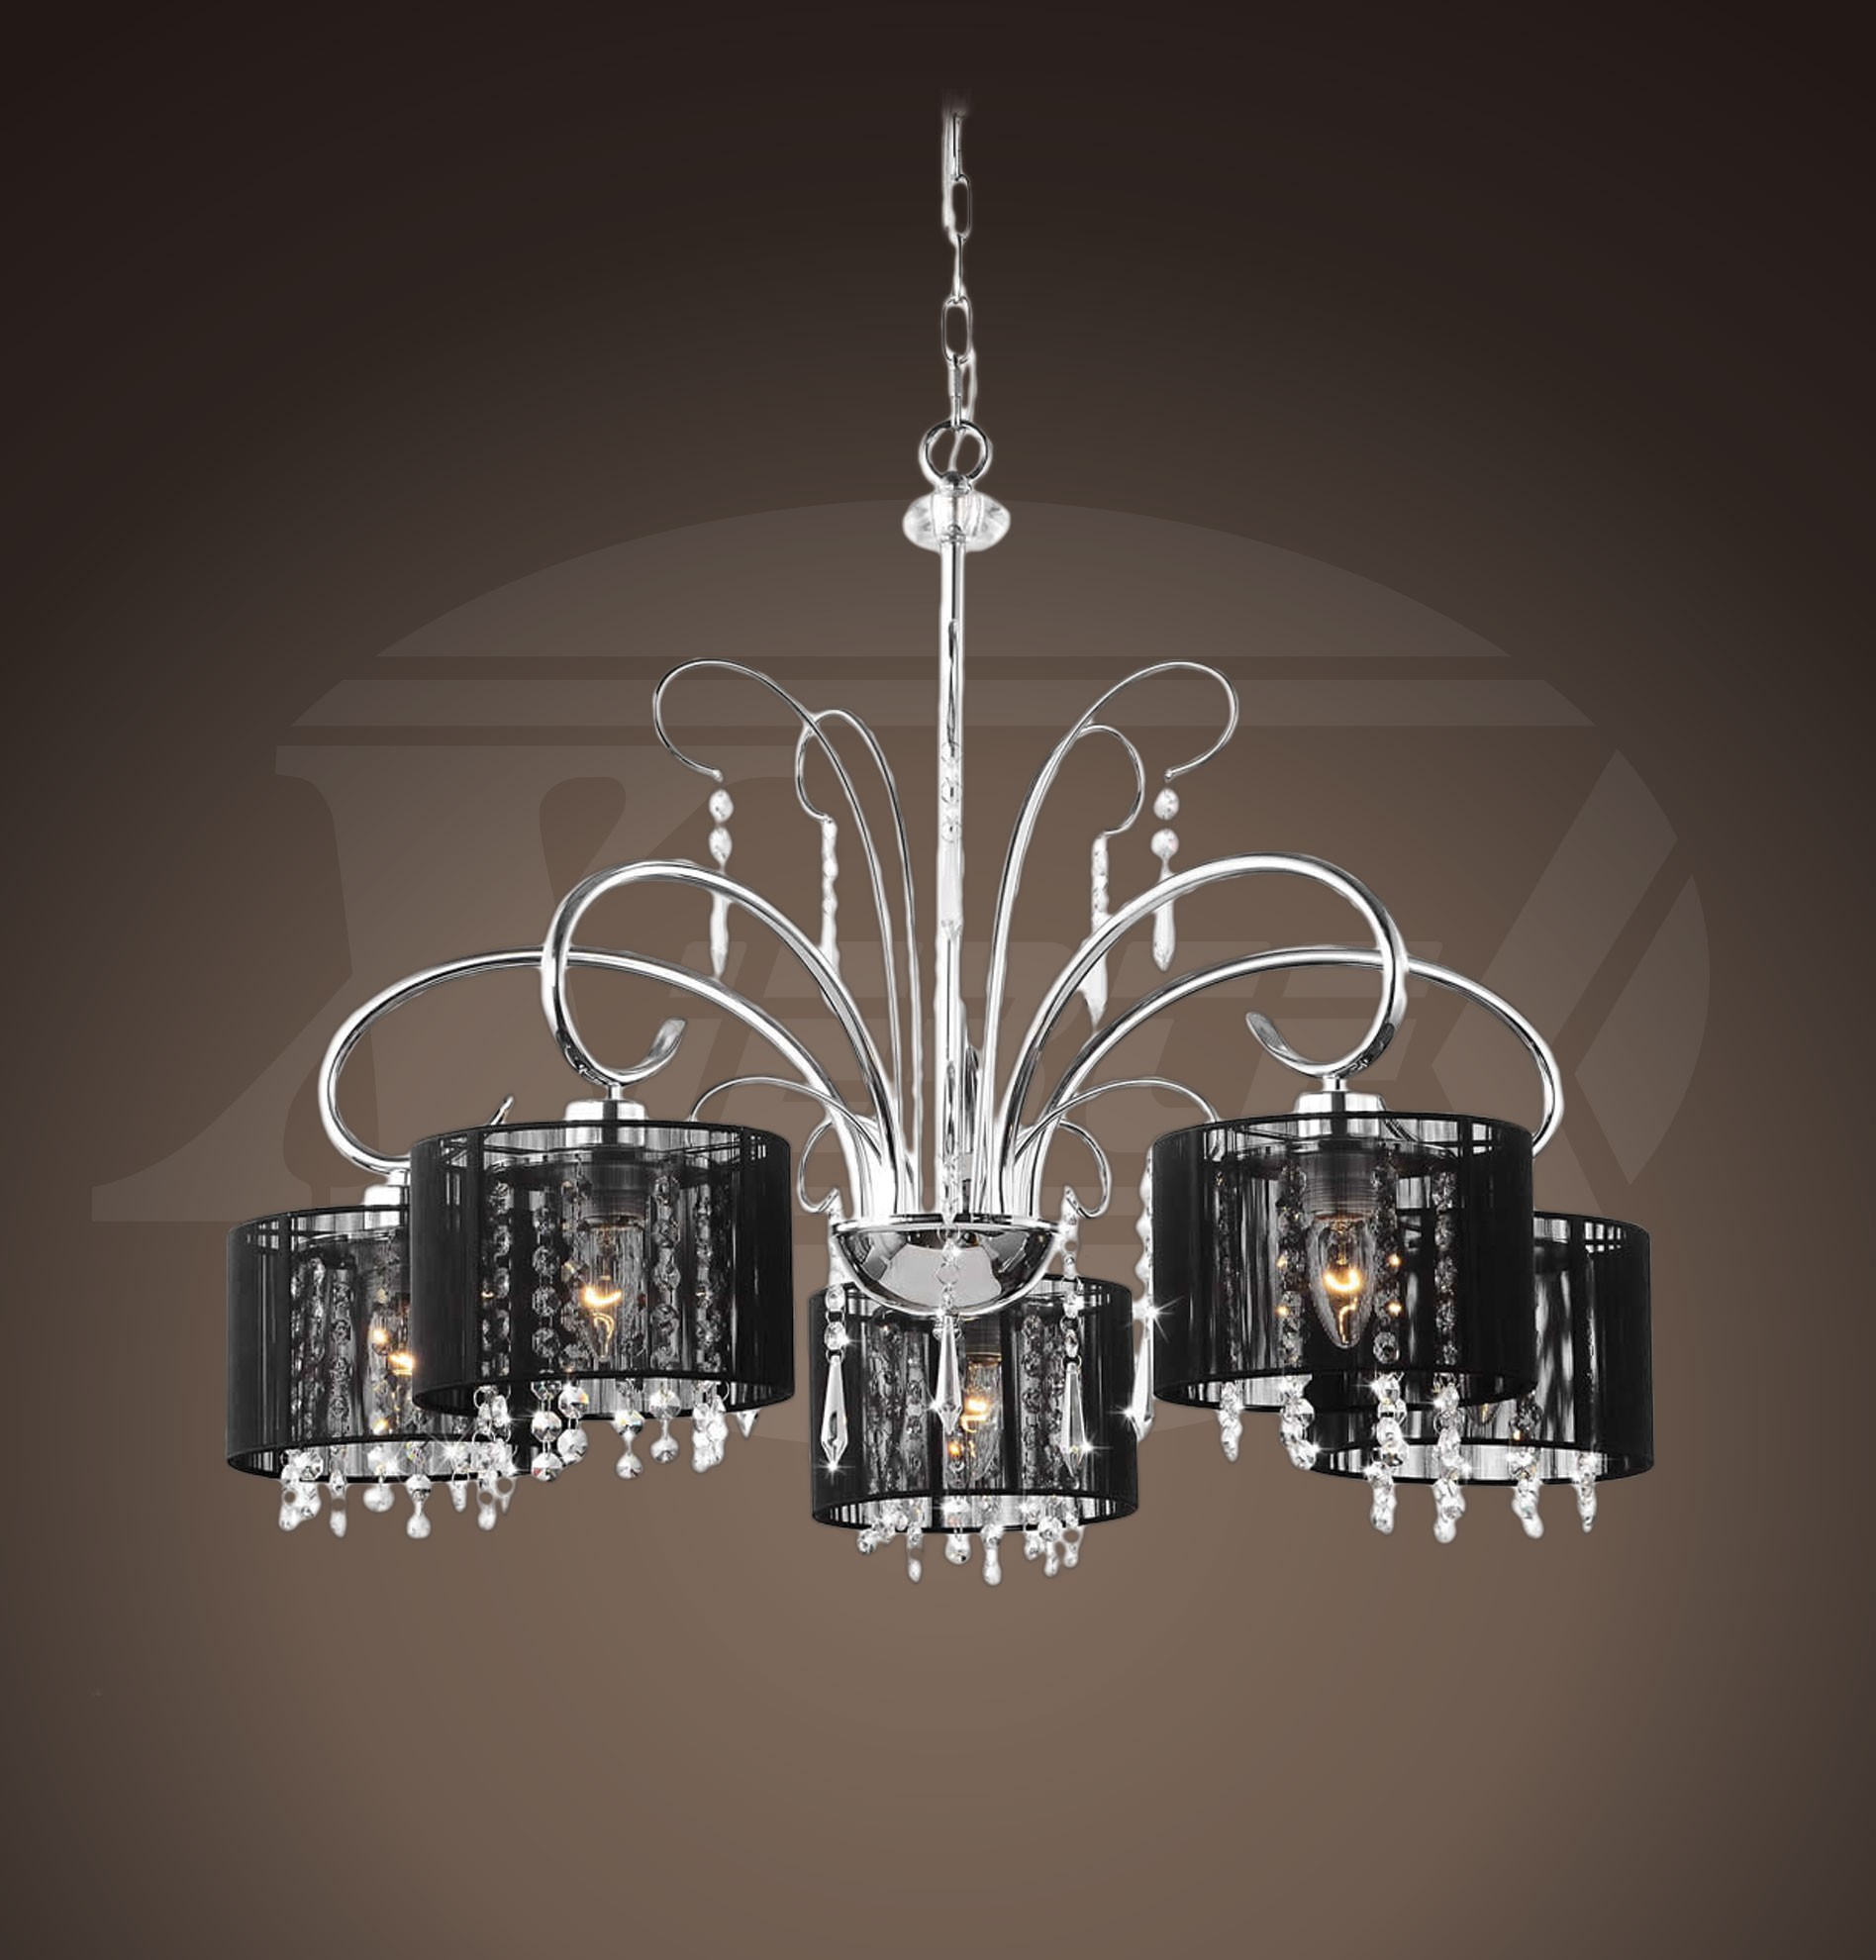 Aegean Black Shade 5 Light Chrome Chandelier 25 Wx64 H Xtkl661hlj295x